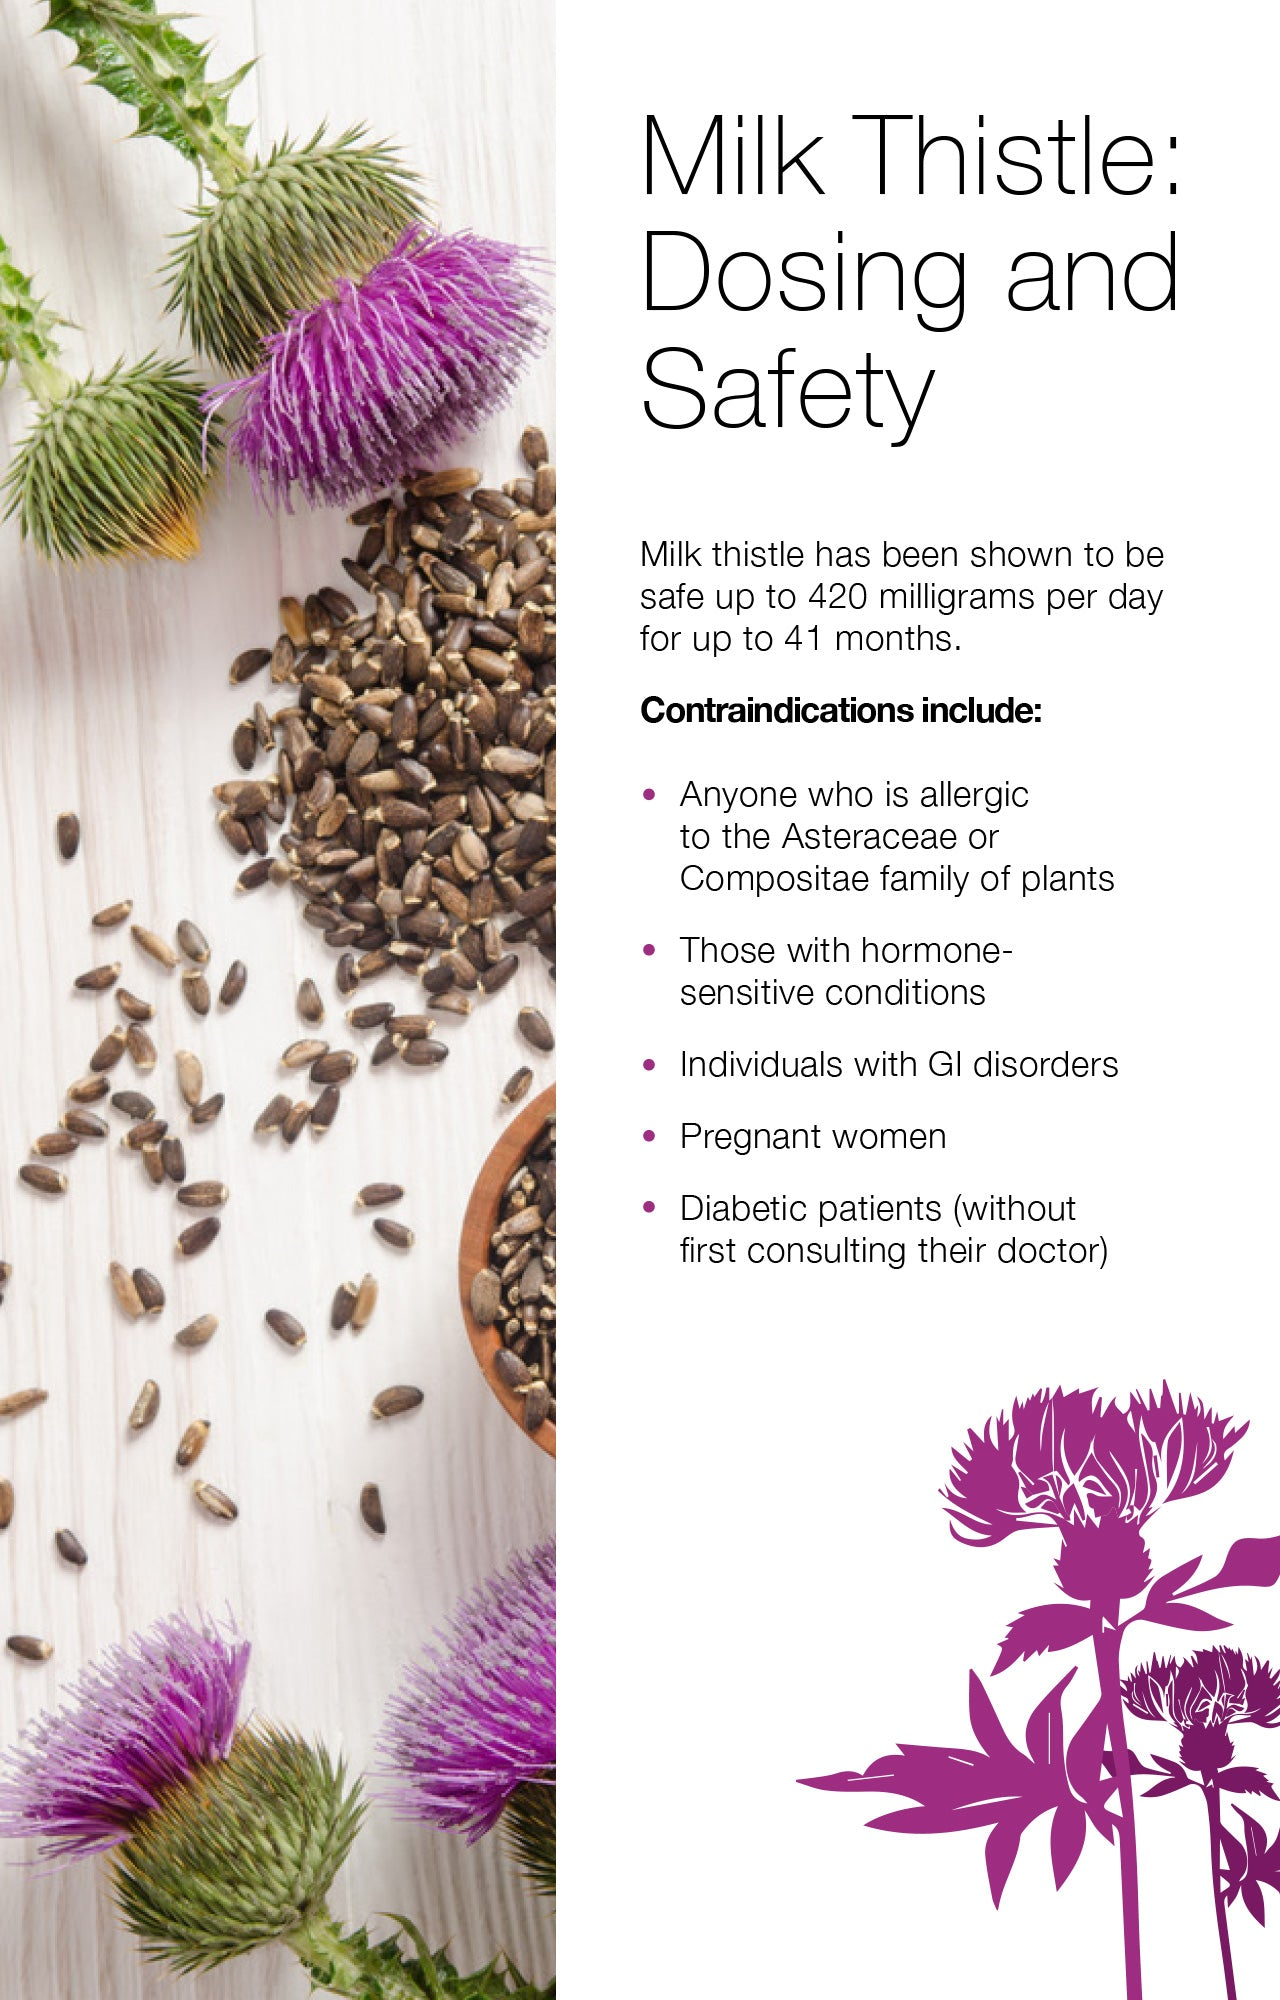 Milk Thistle: Dosing and Safety